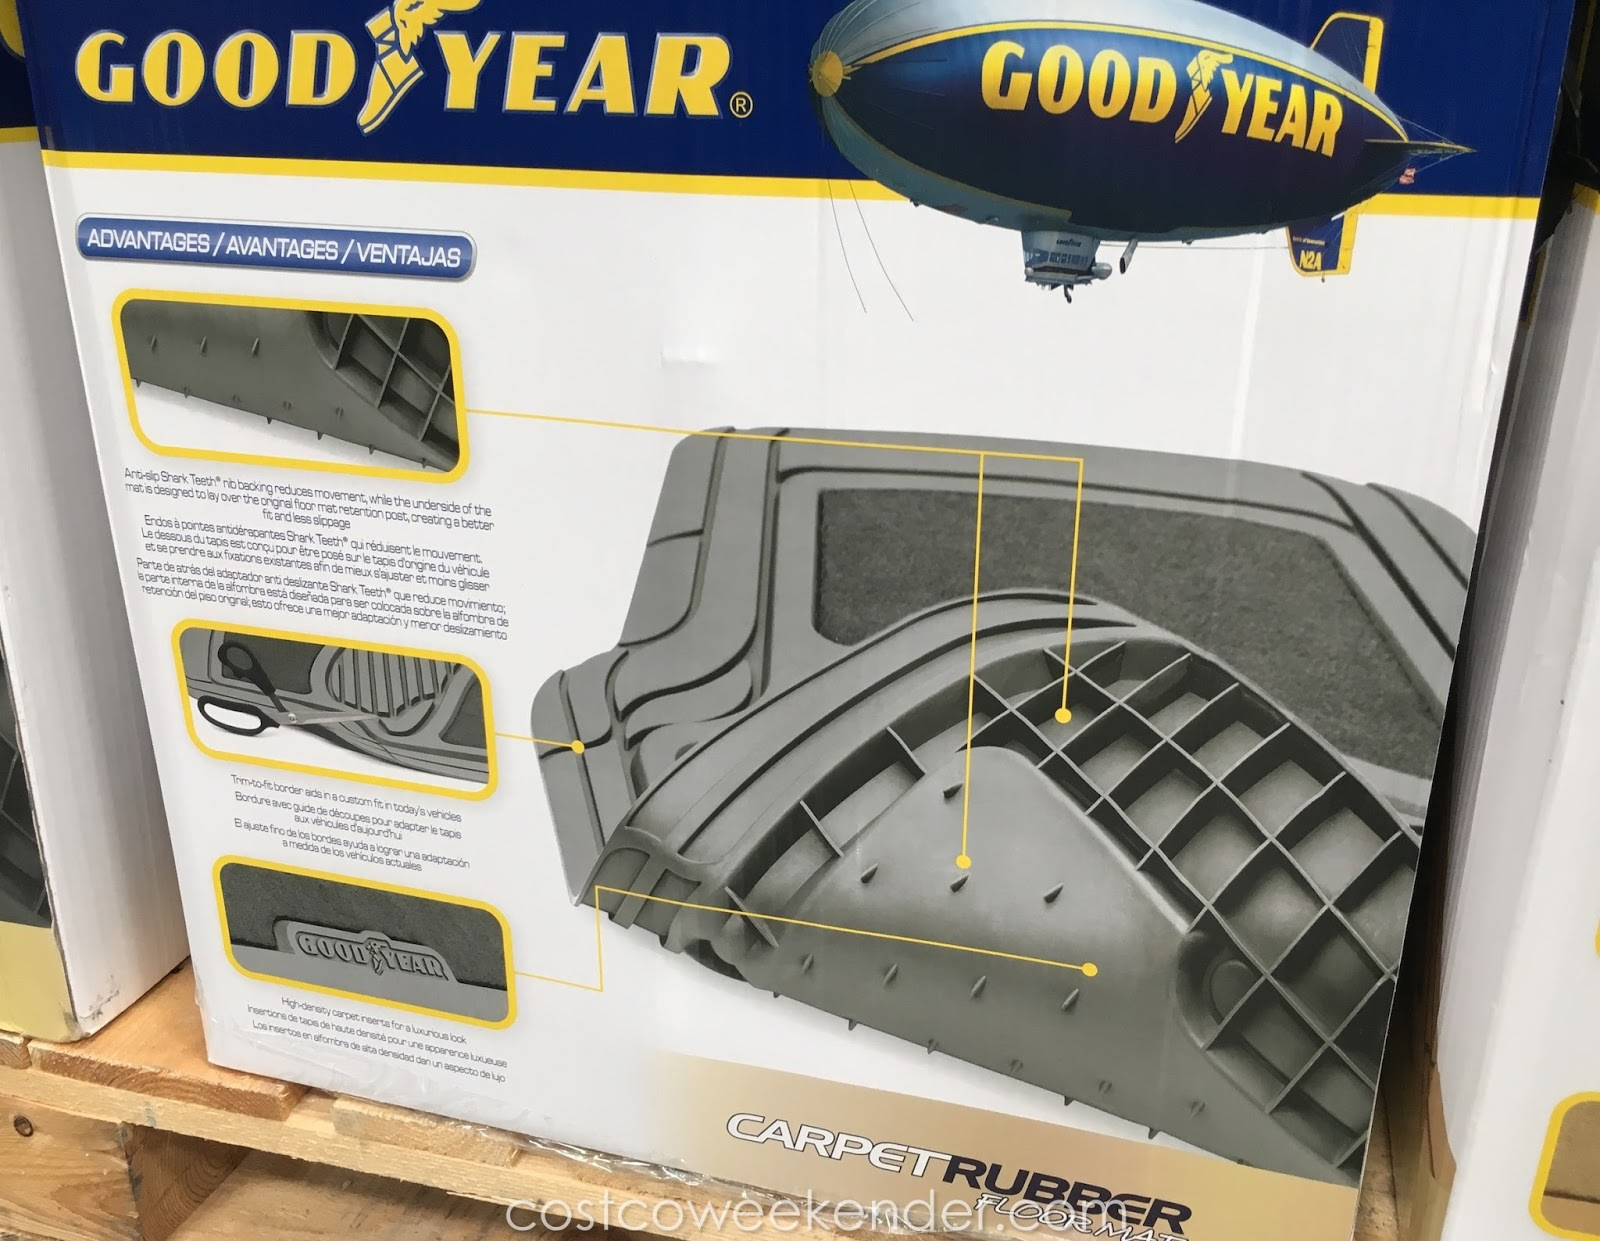 Rubber mats costco - All Weather Goodyear Carpet Rubber Floor Mats Designed For Rain Mud Snow